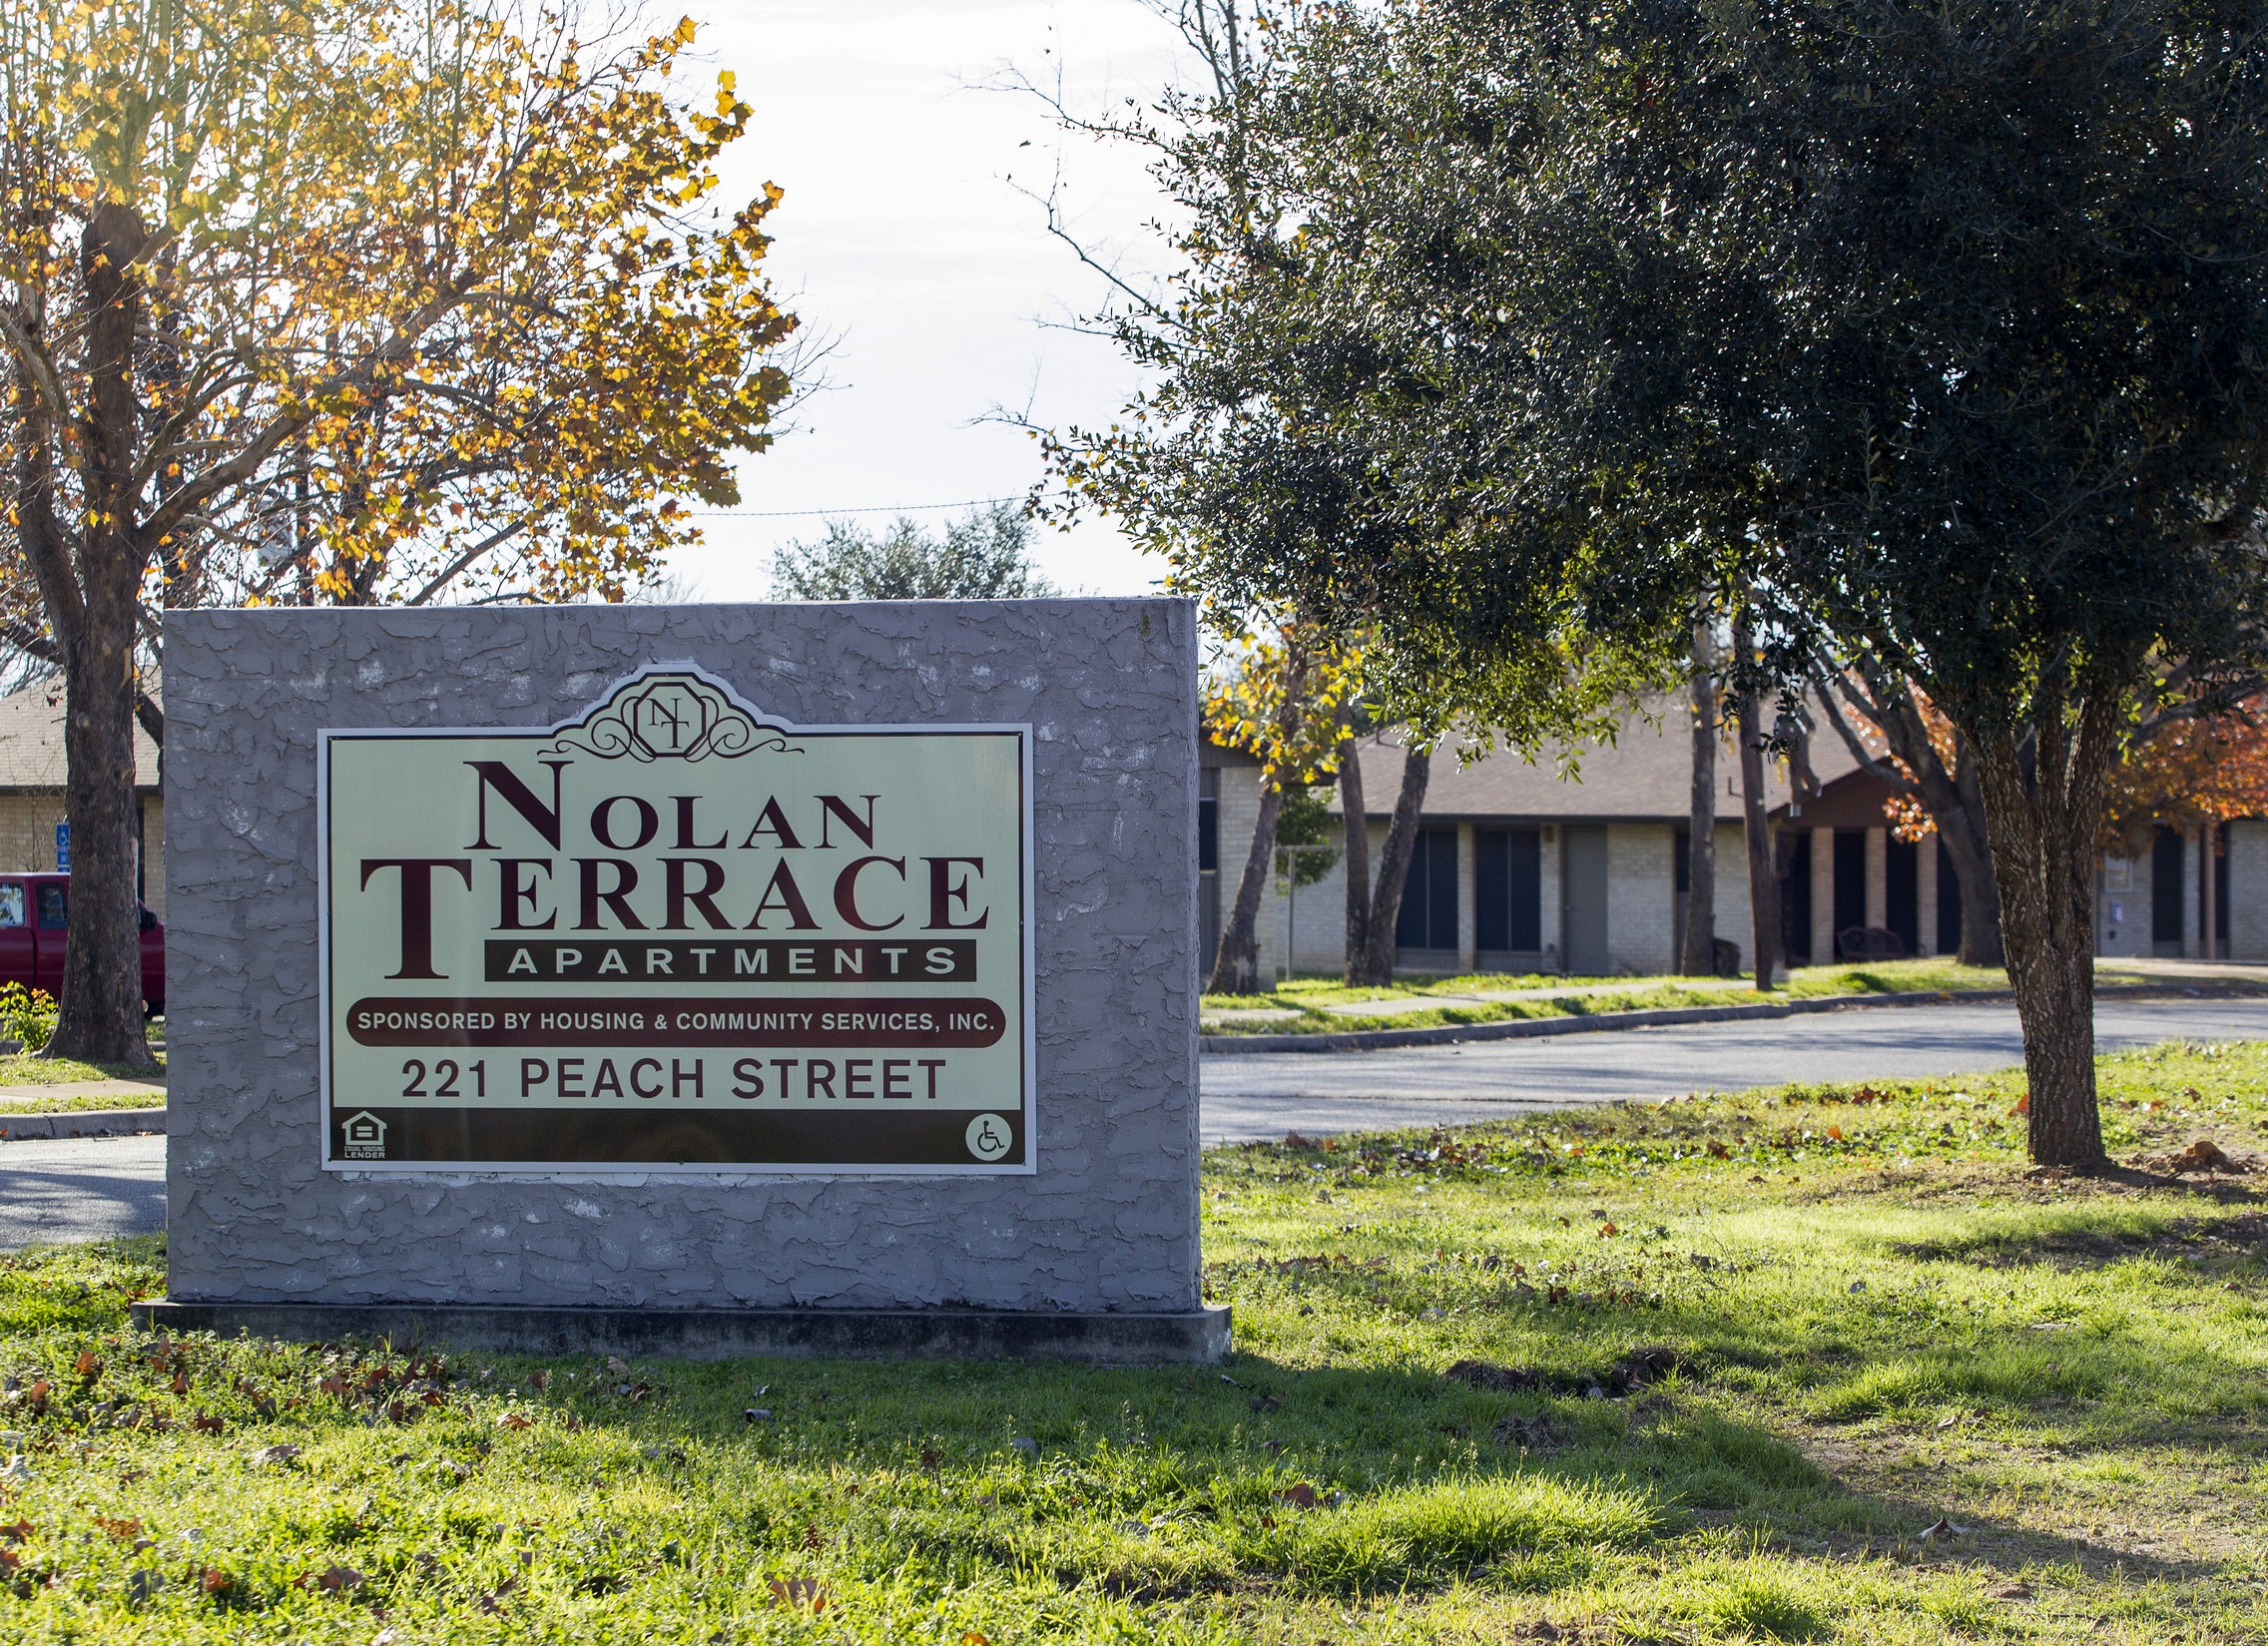 Nolan Terrace Apartments